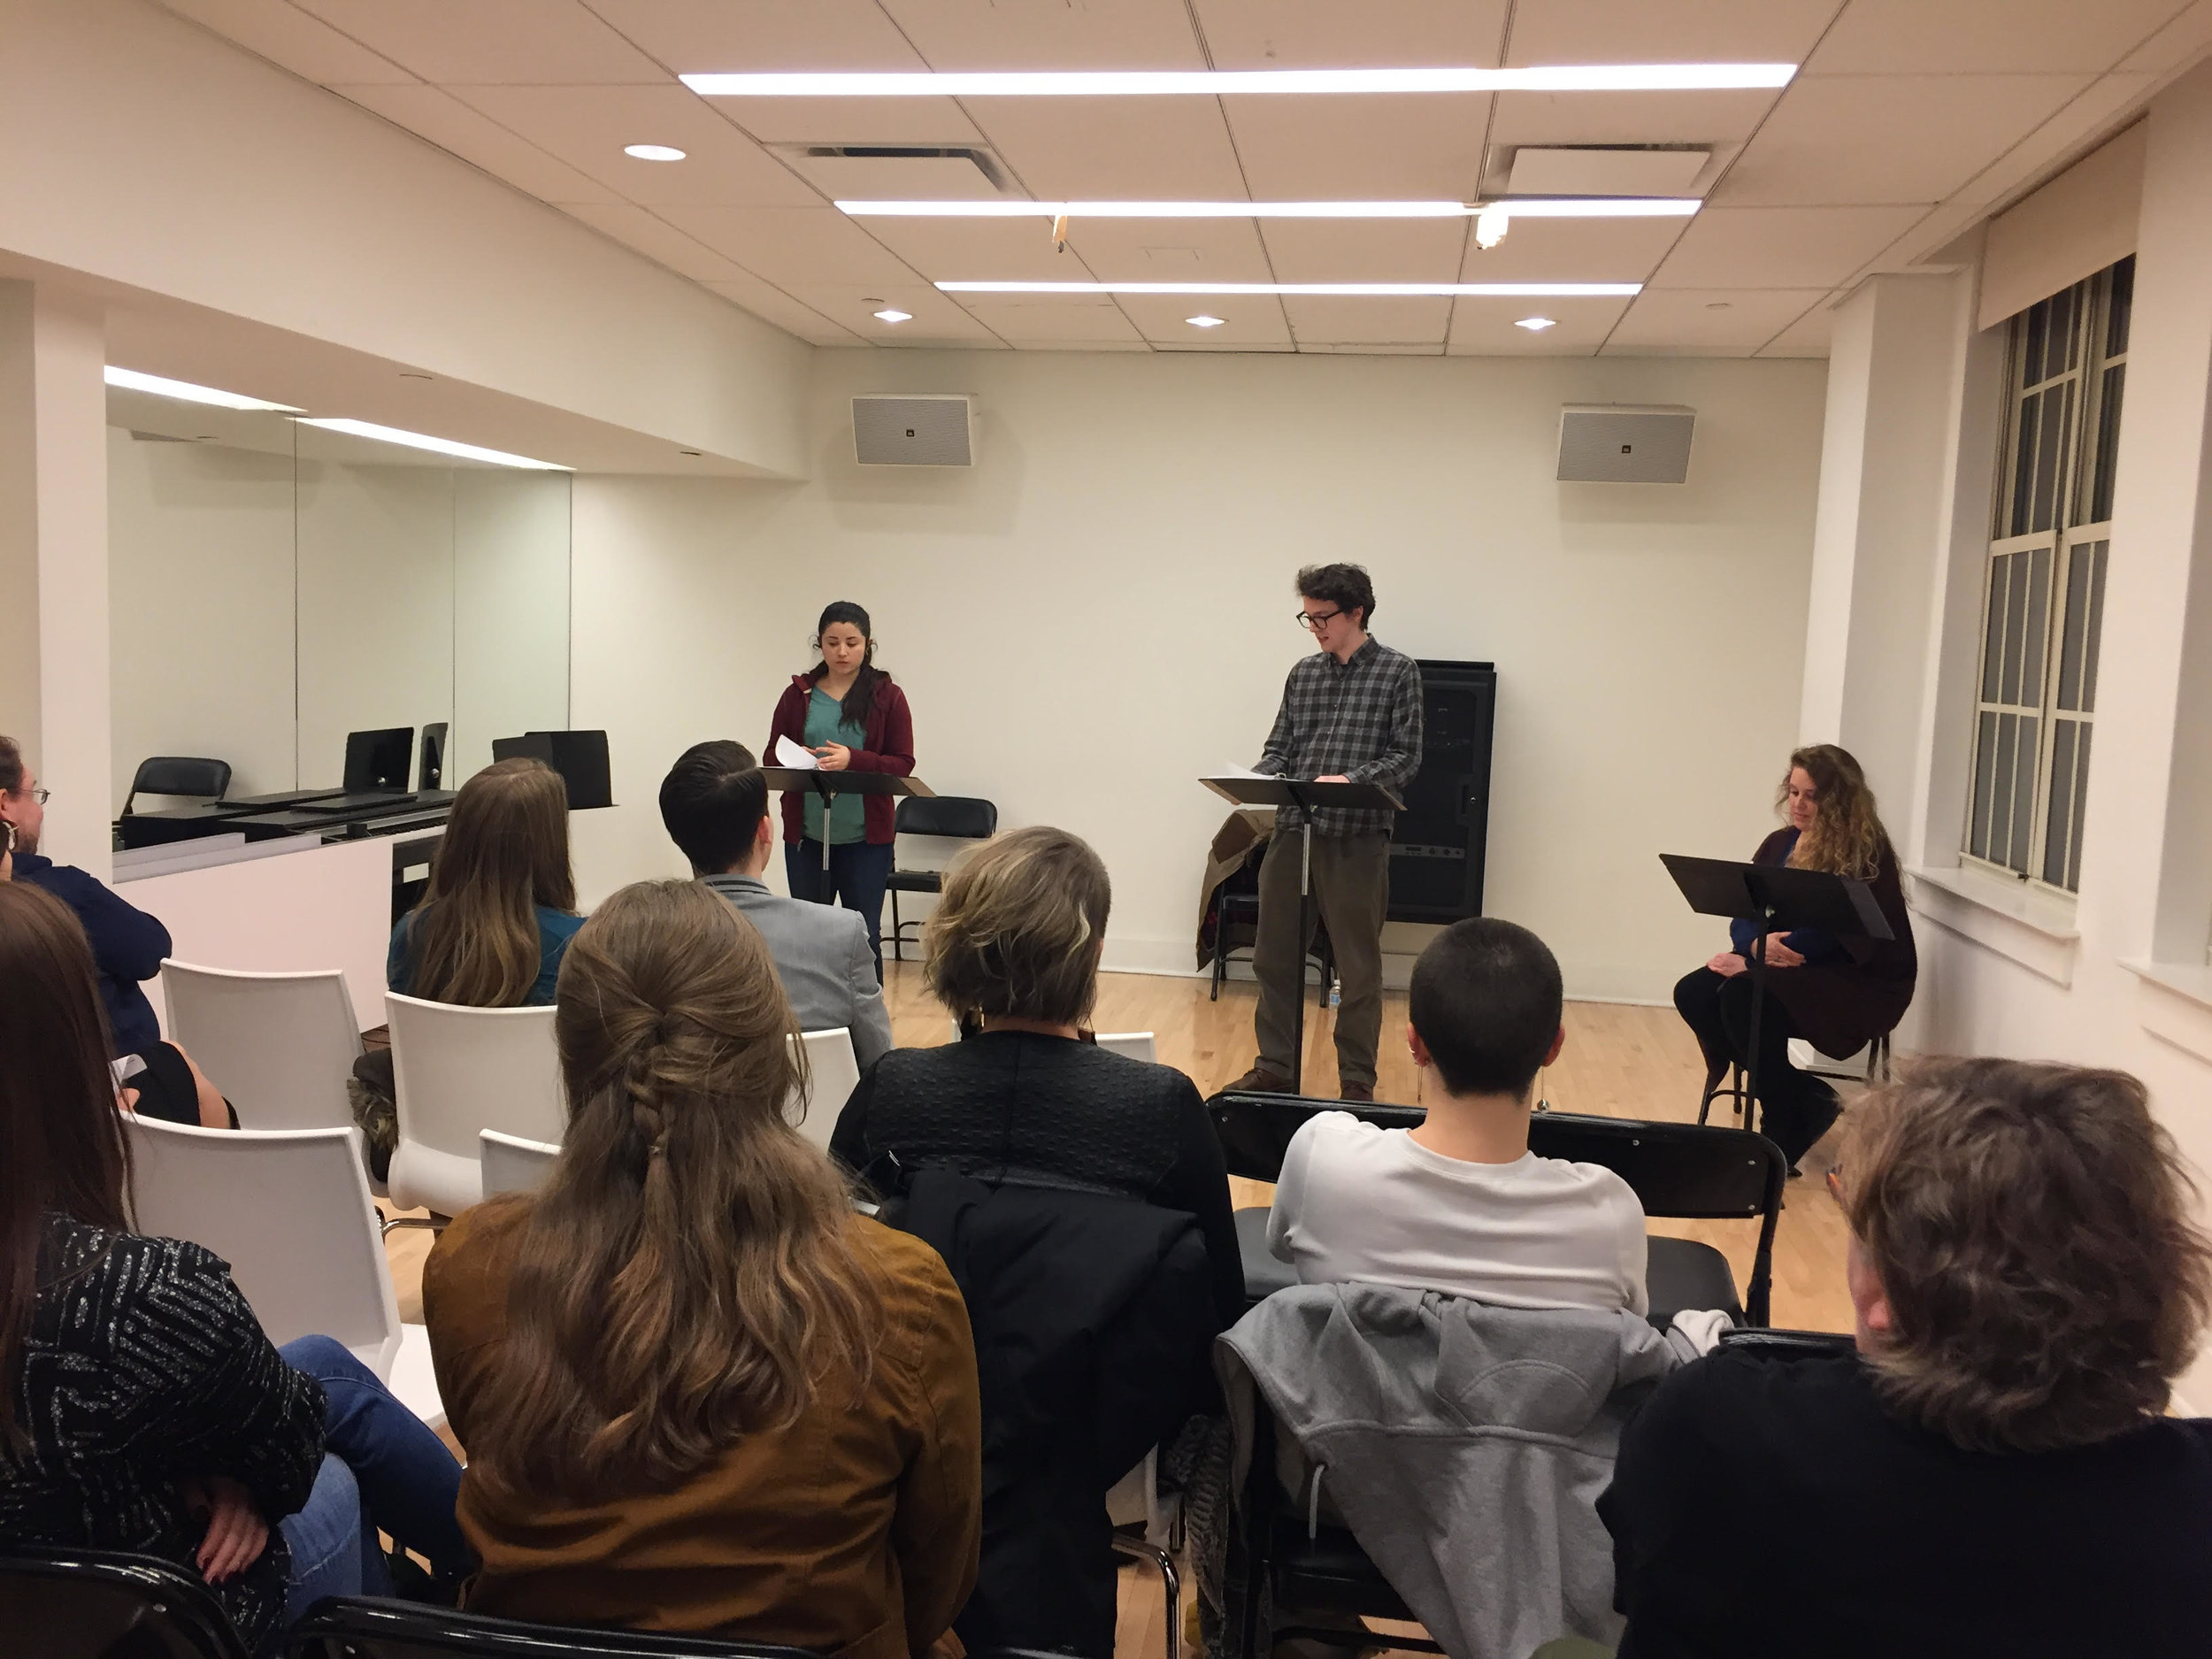 Photo from our first informal reading in March 2018